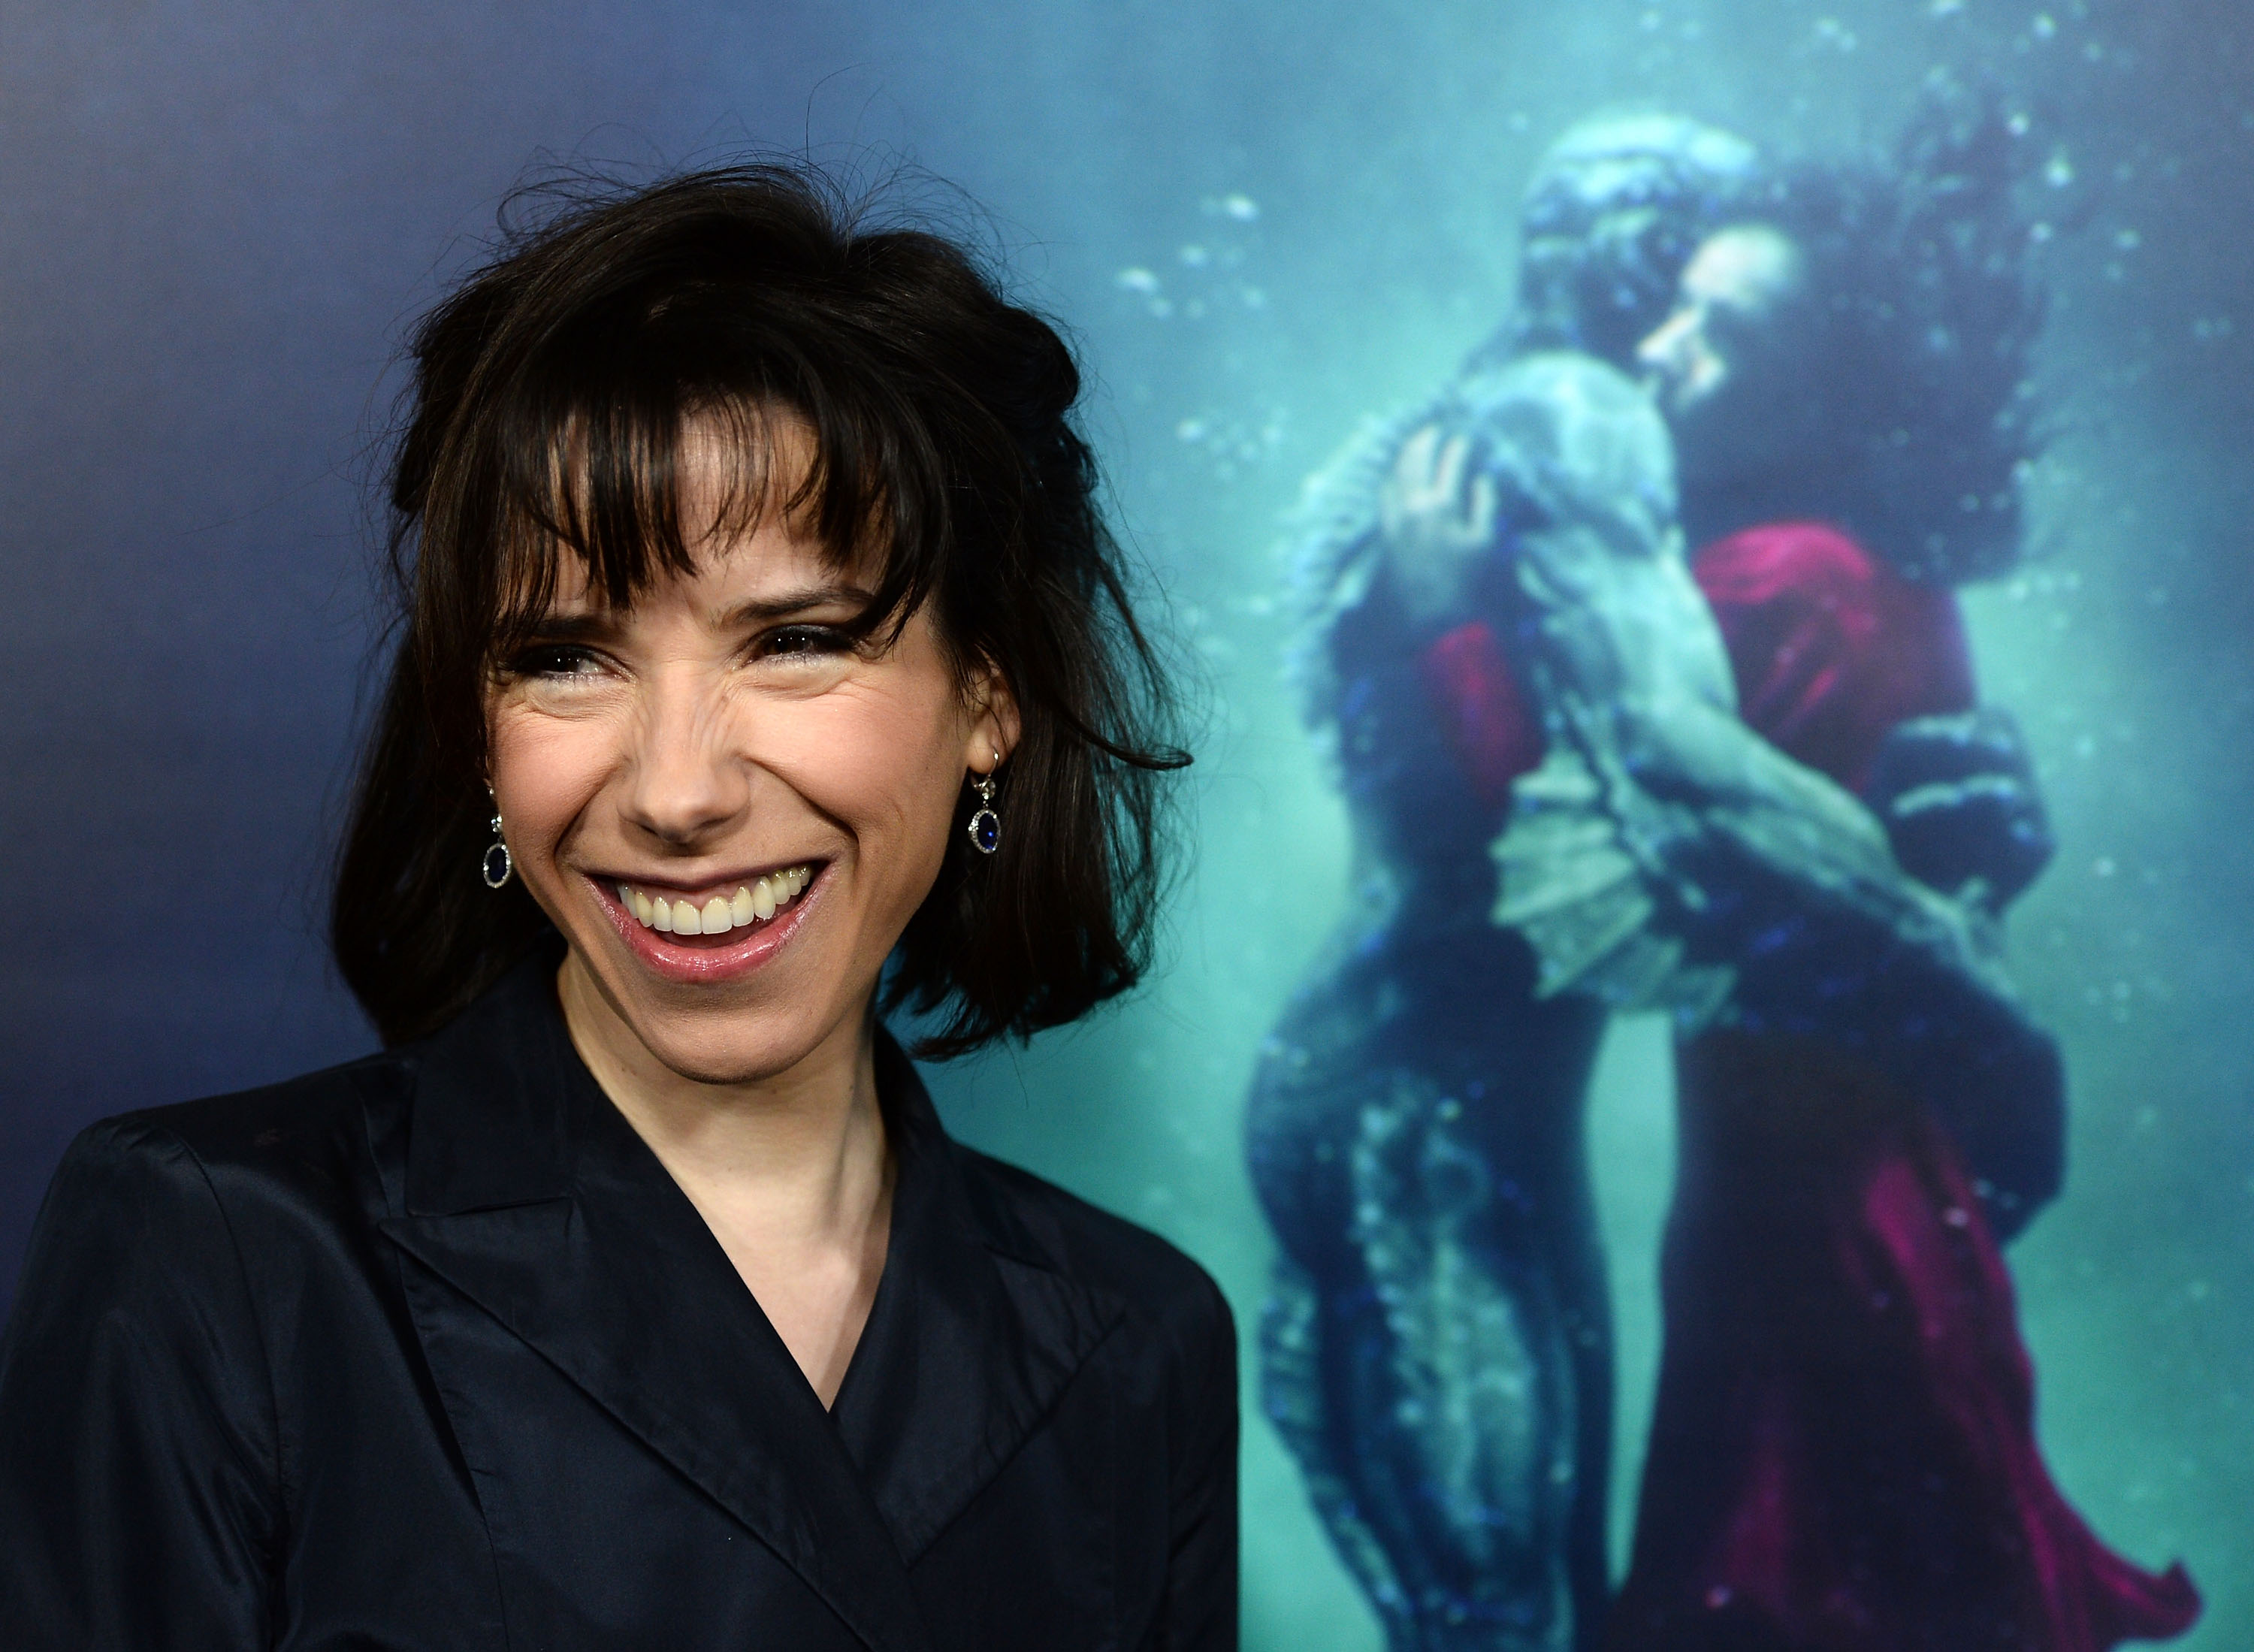 Image result for Oscar 2018 90 year shape of water photos